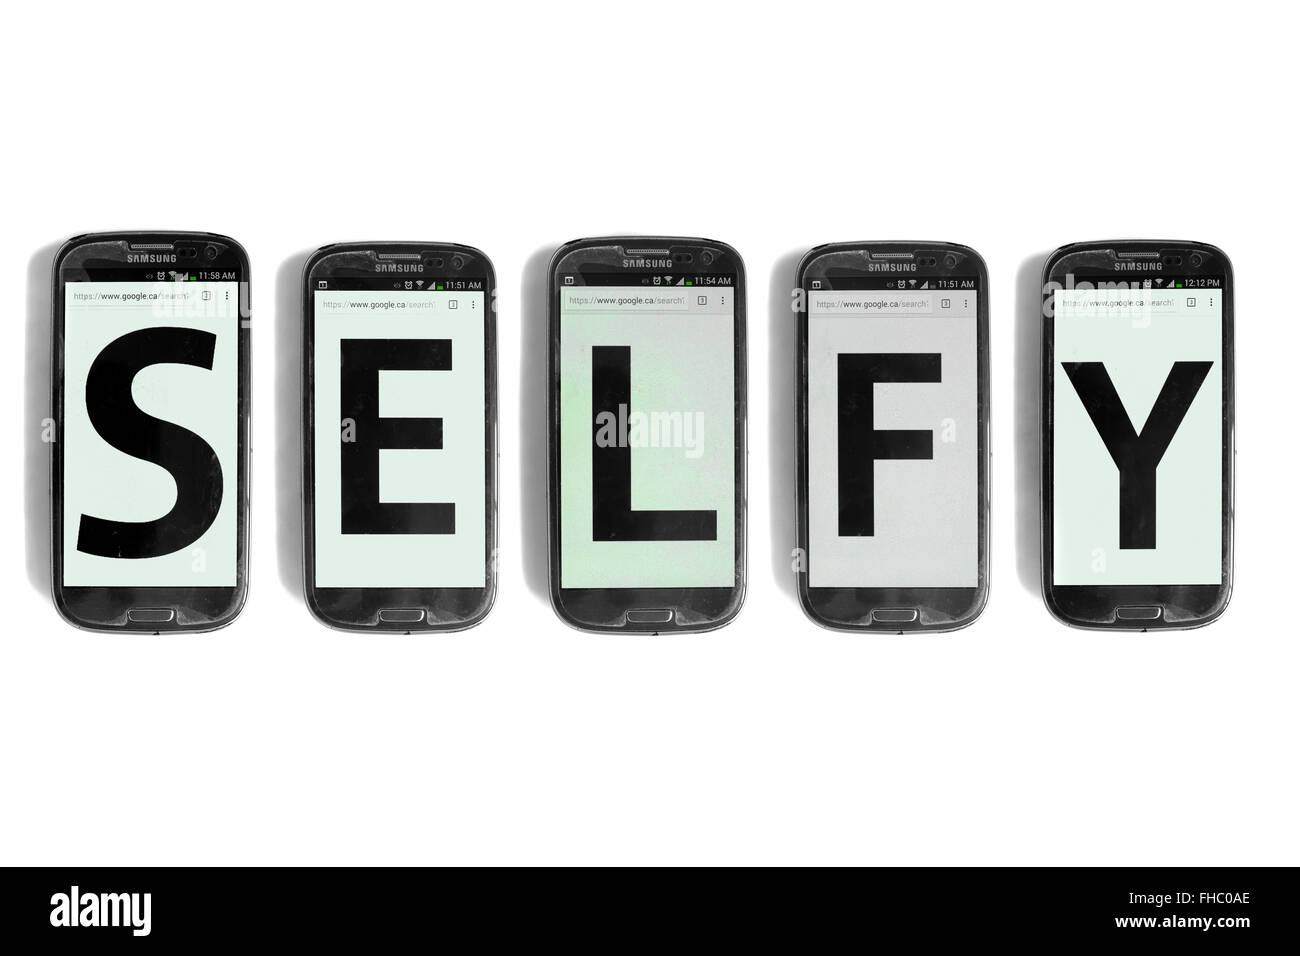 Selfy written on the screens of smartphones photographed against a white background. - Stock Image